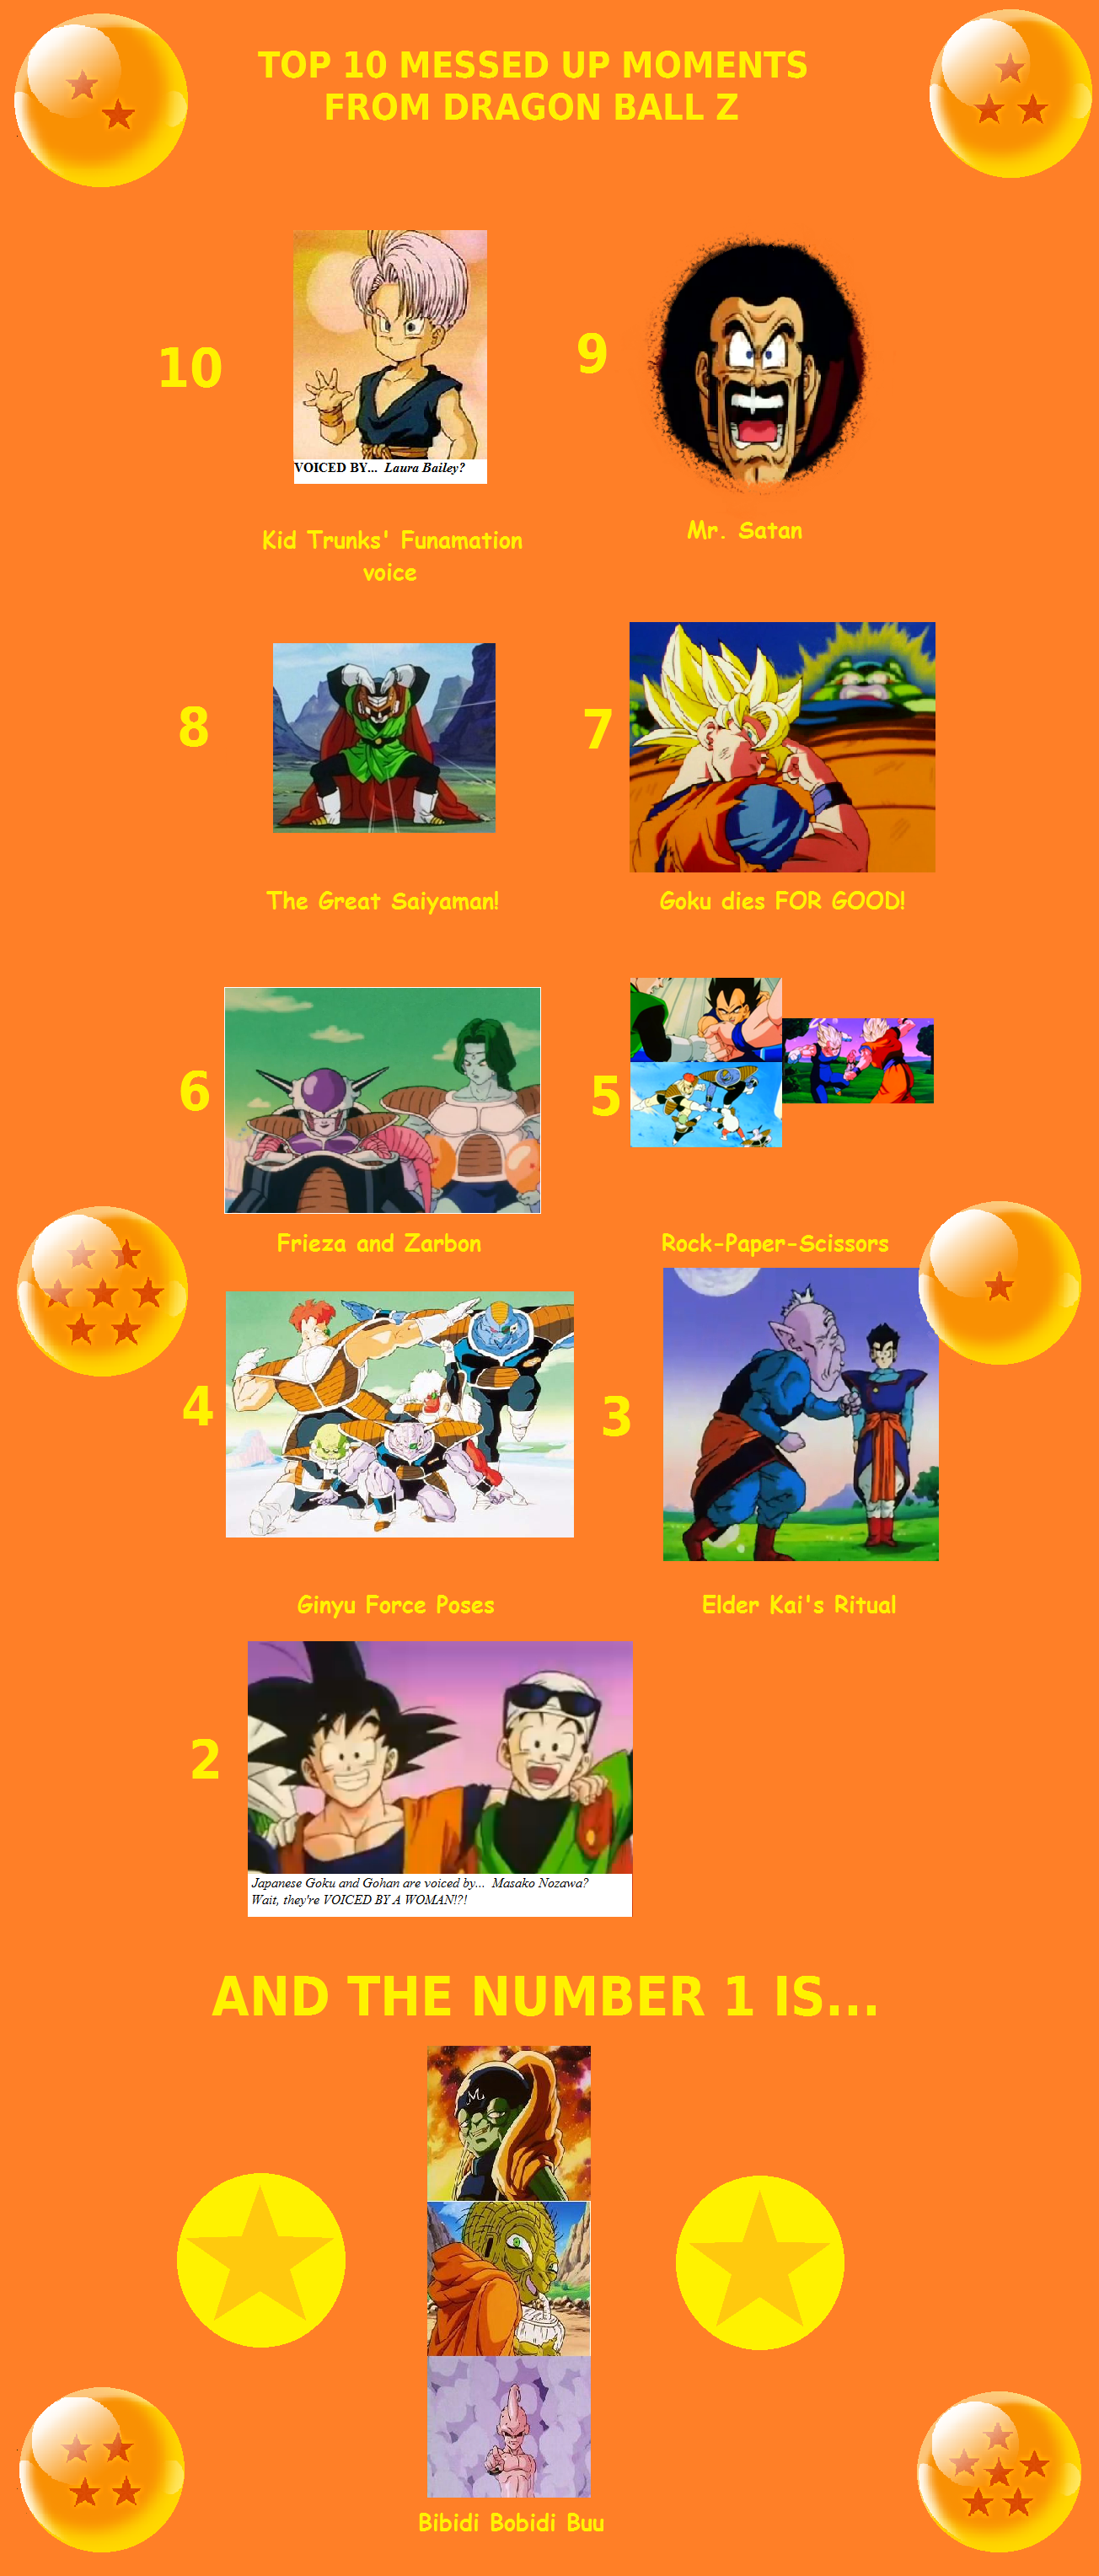 Top 10 Messed up Moments from Dragon Ball Z by ufd